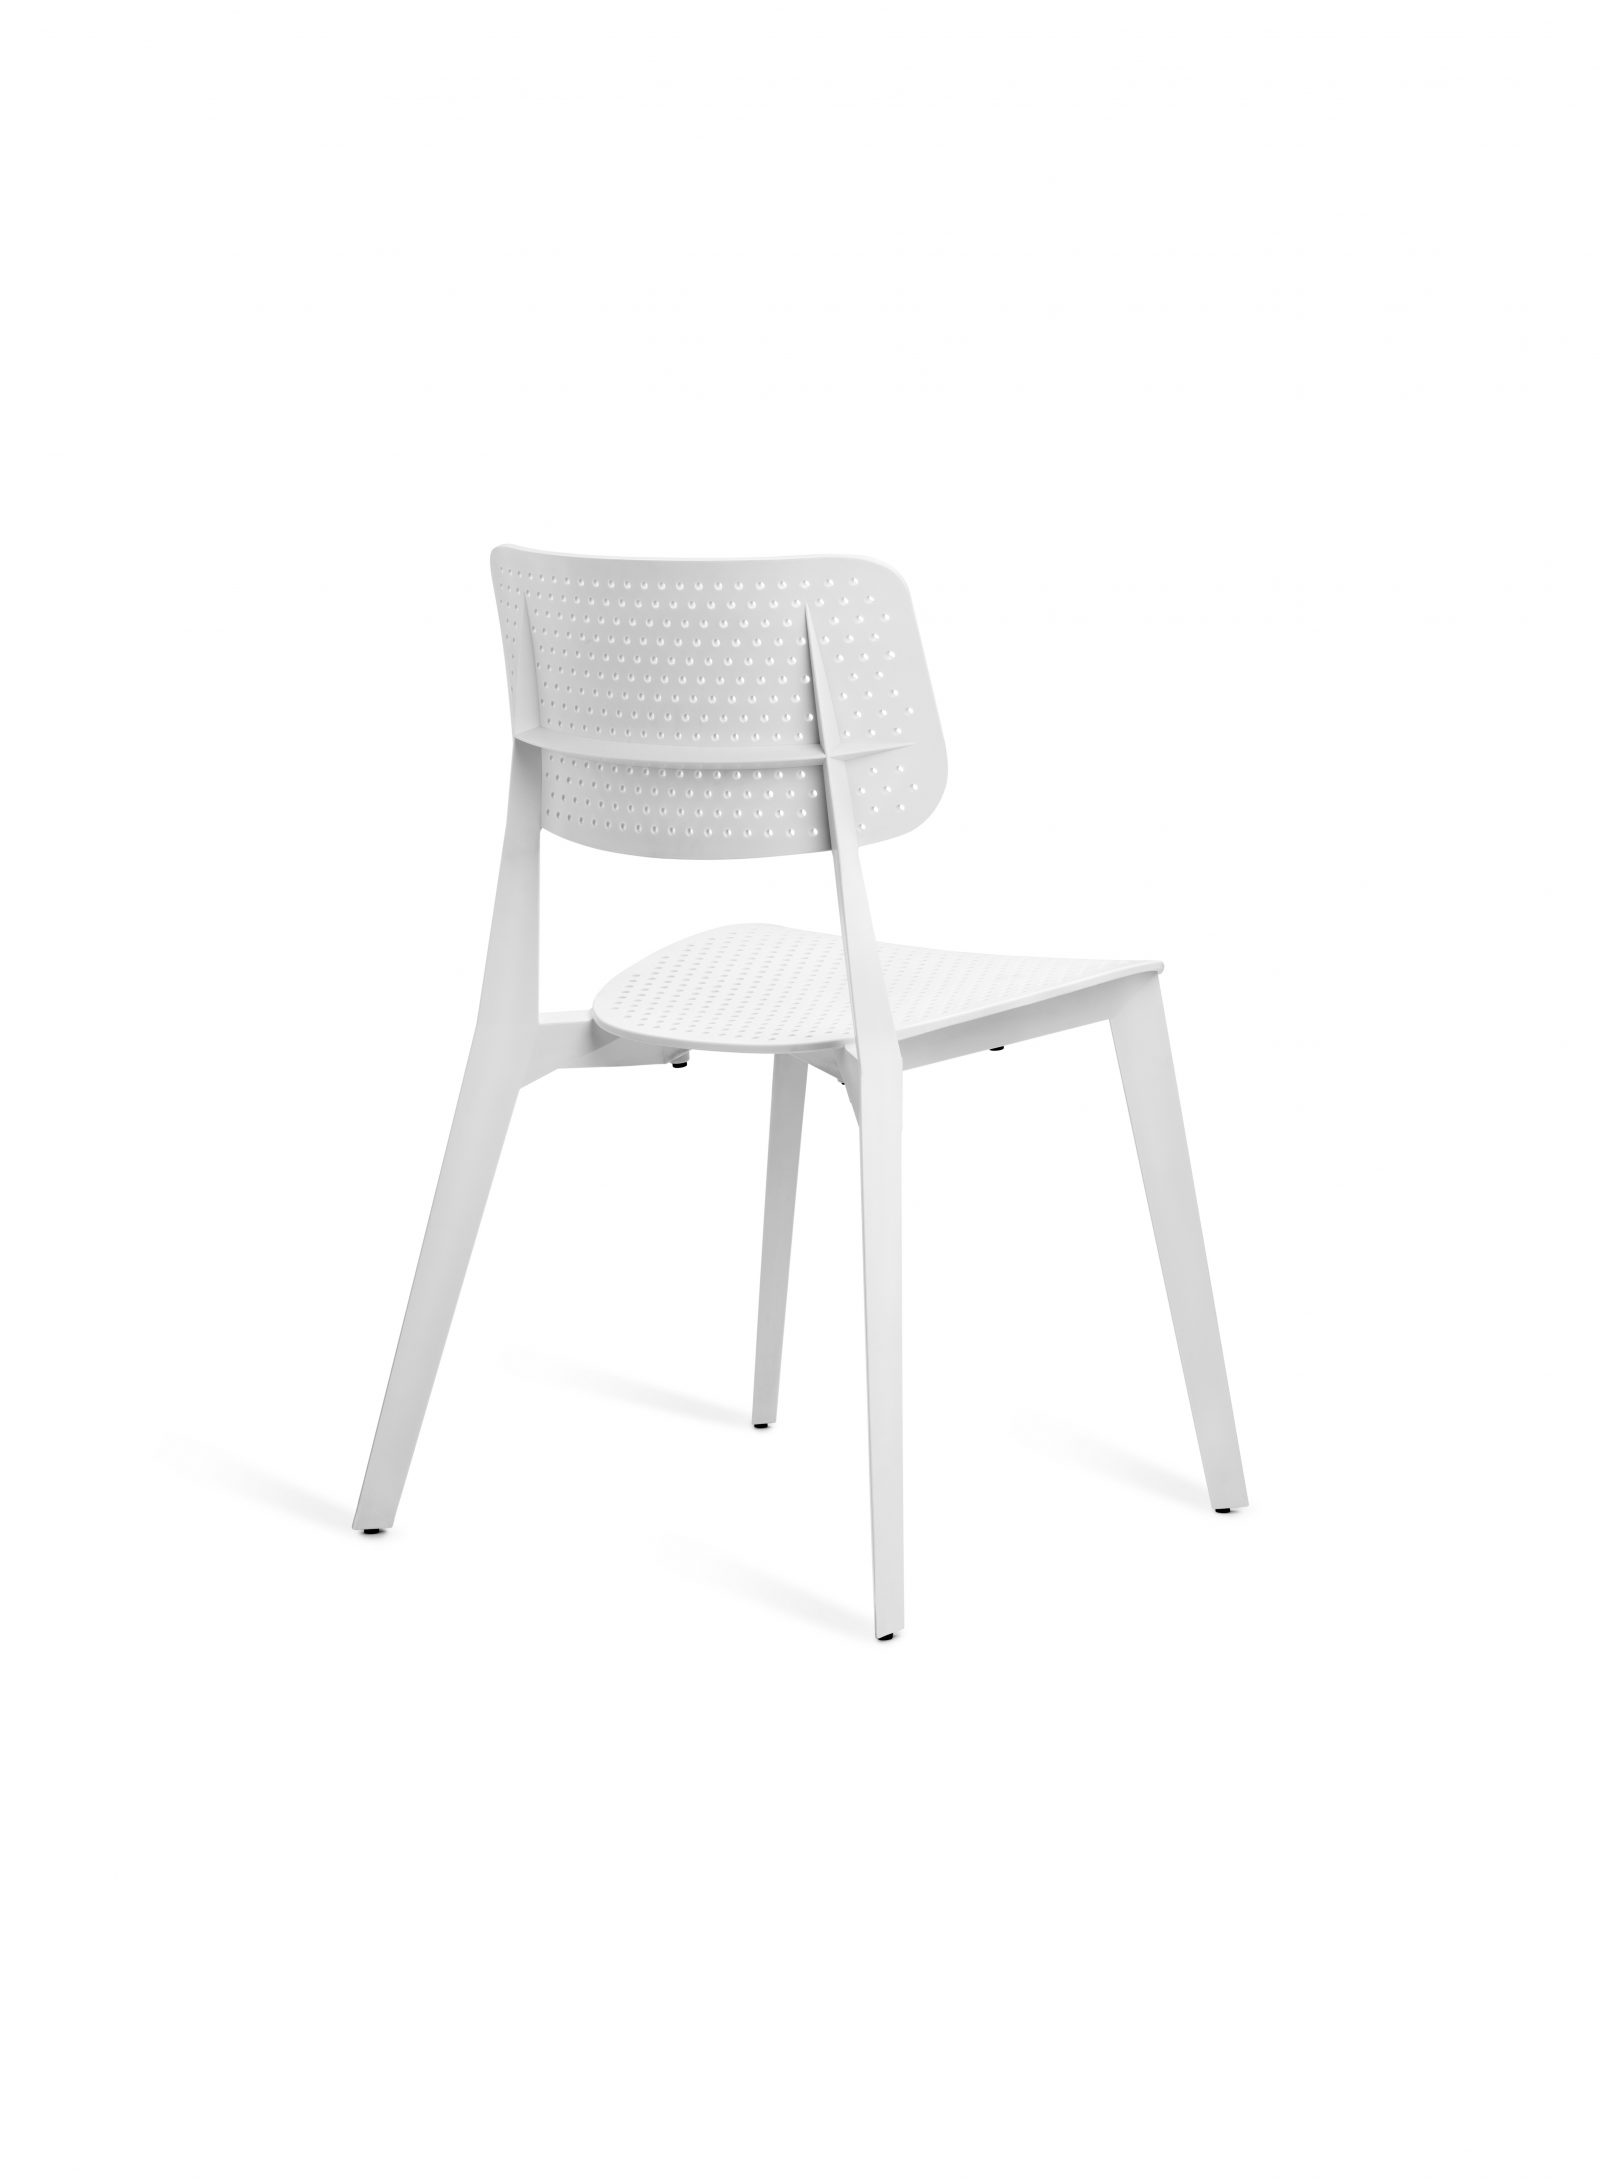 stellar-perforated-chair-white-5